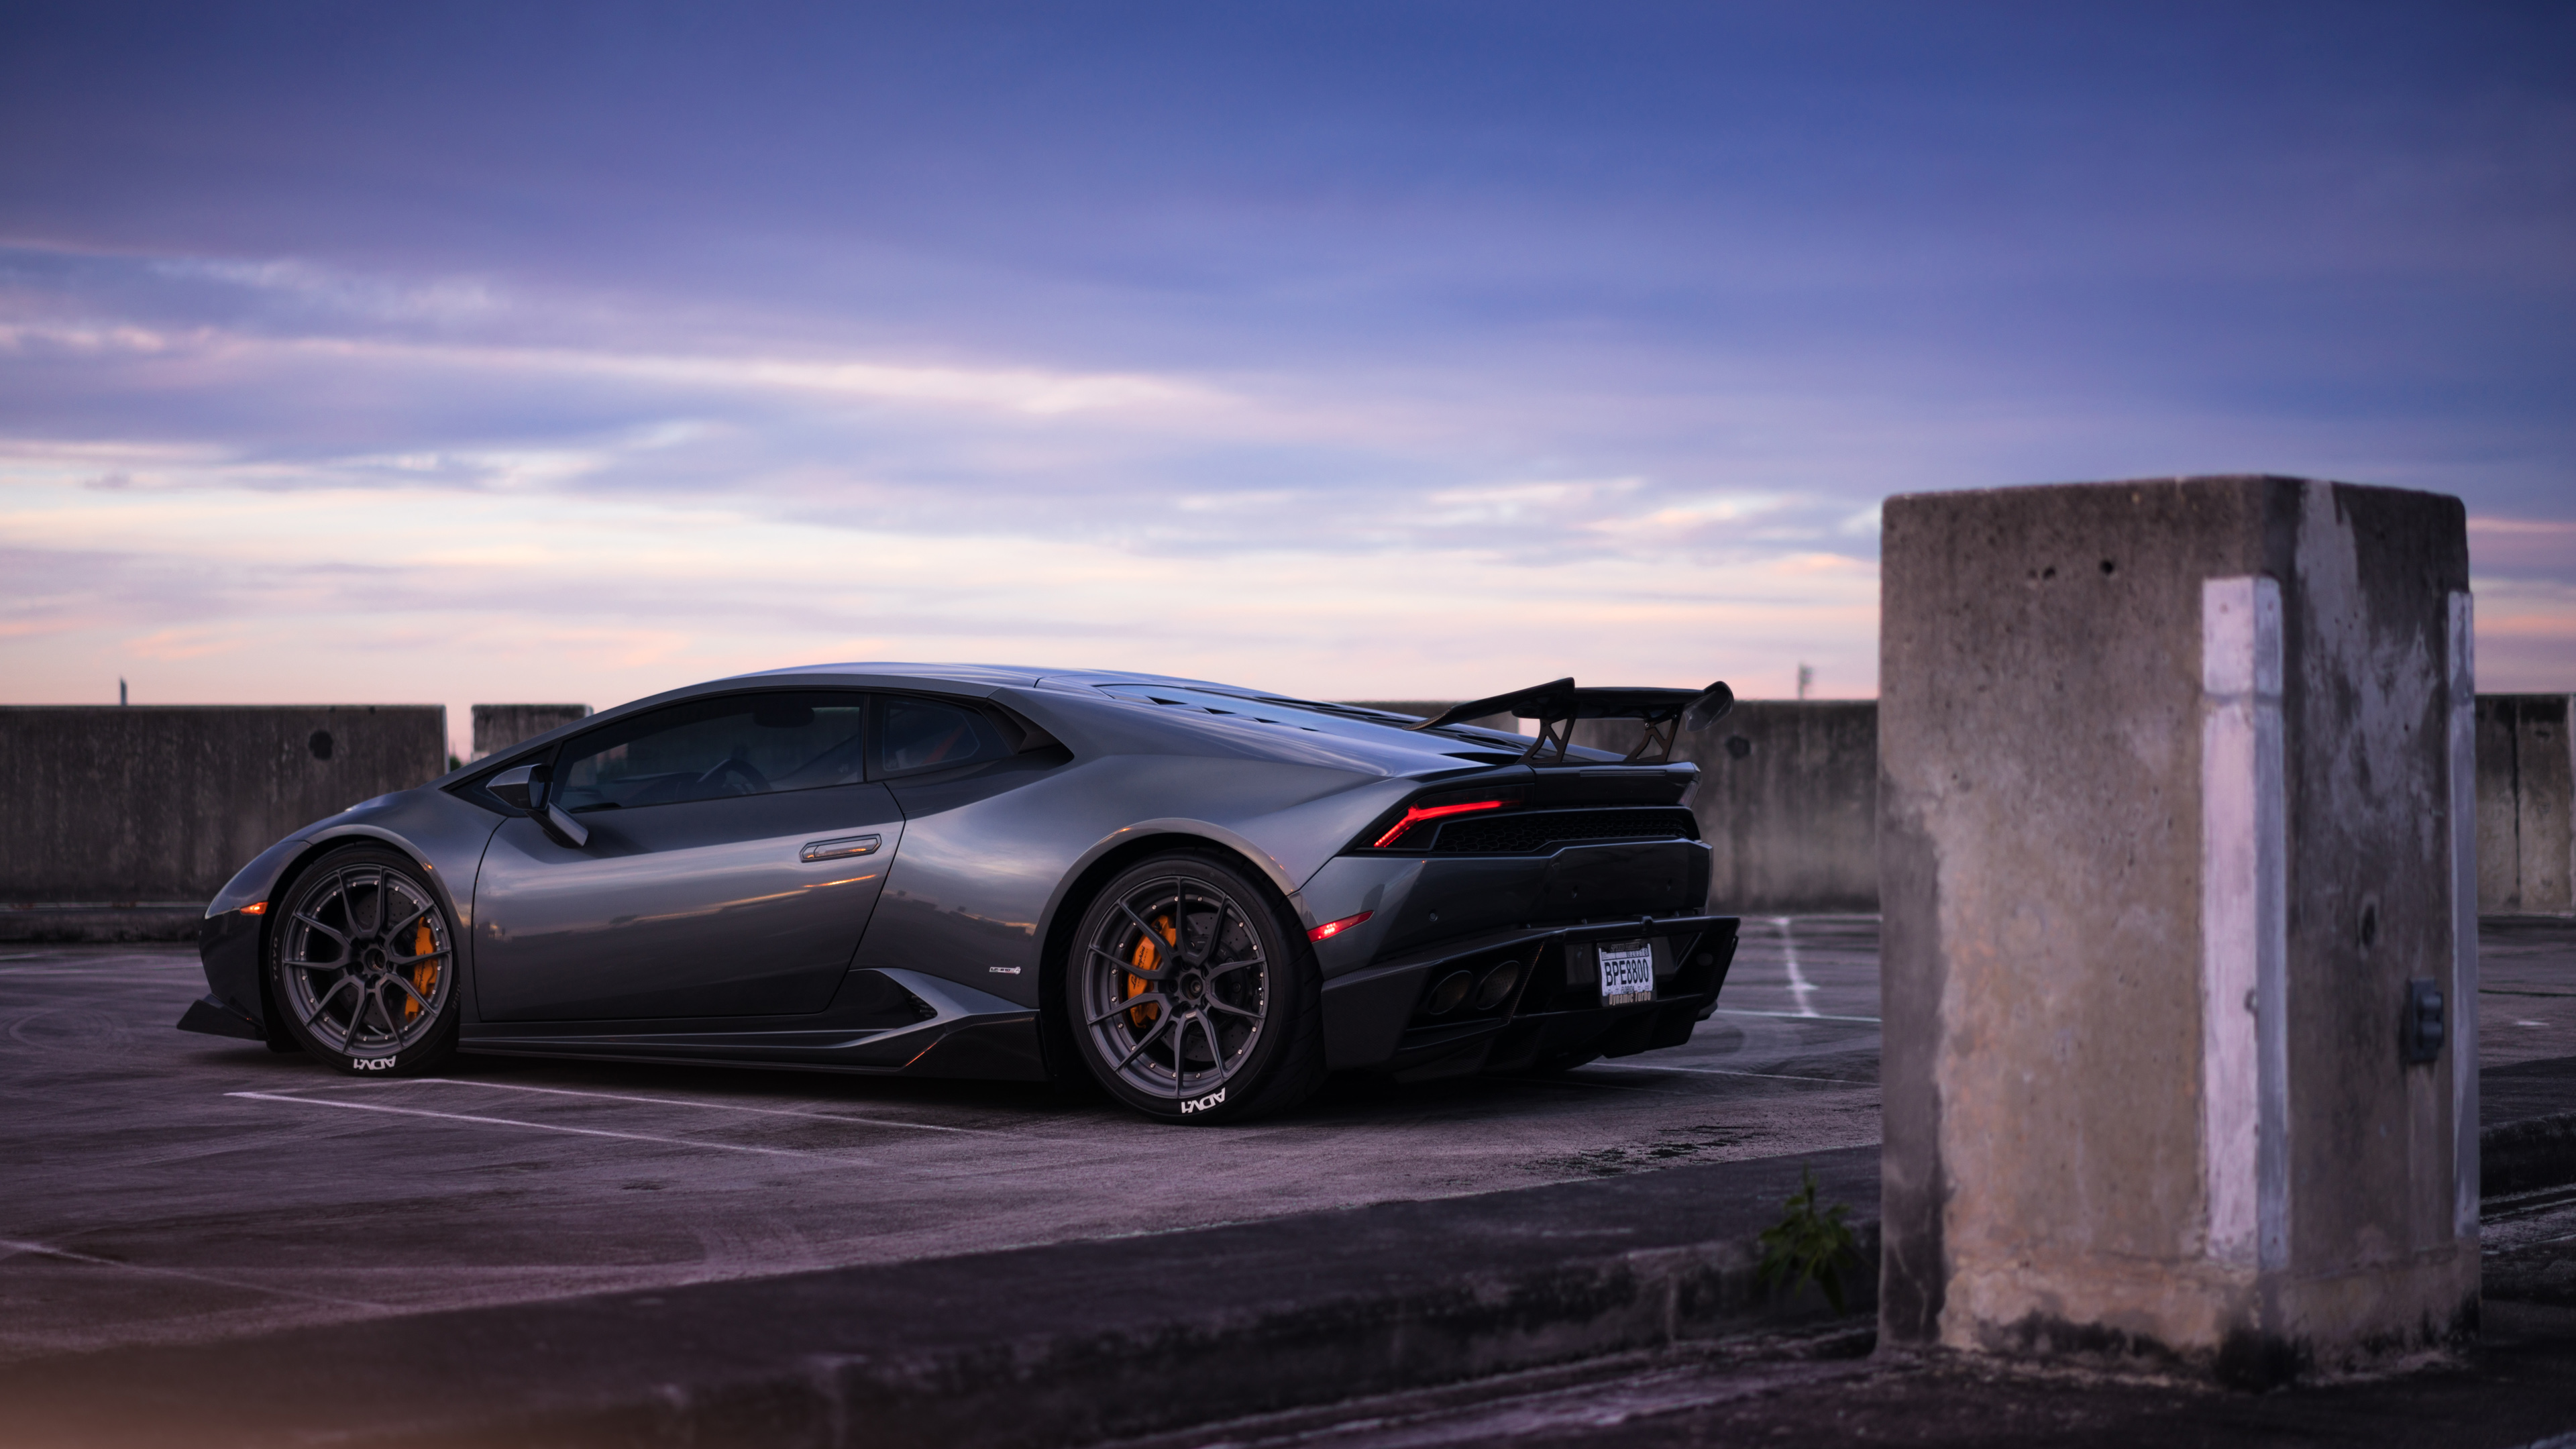 lamborghini huracan on adv1 wheels - Lamborghini Huracan Wallpaper